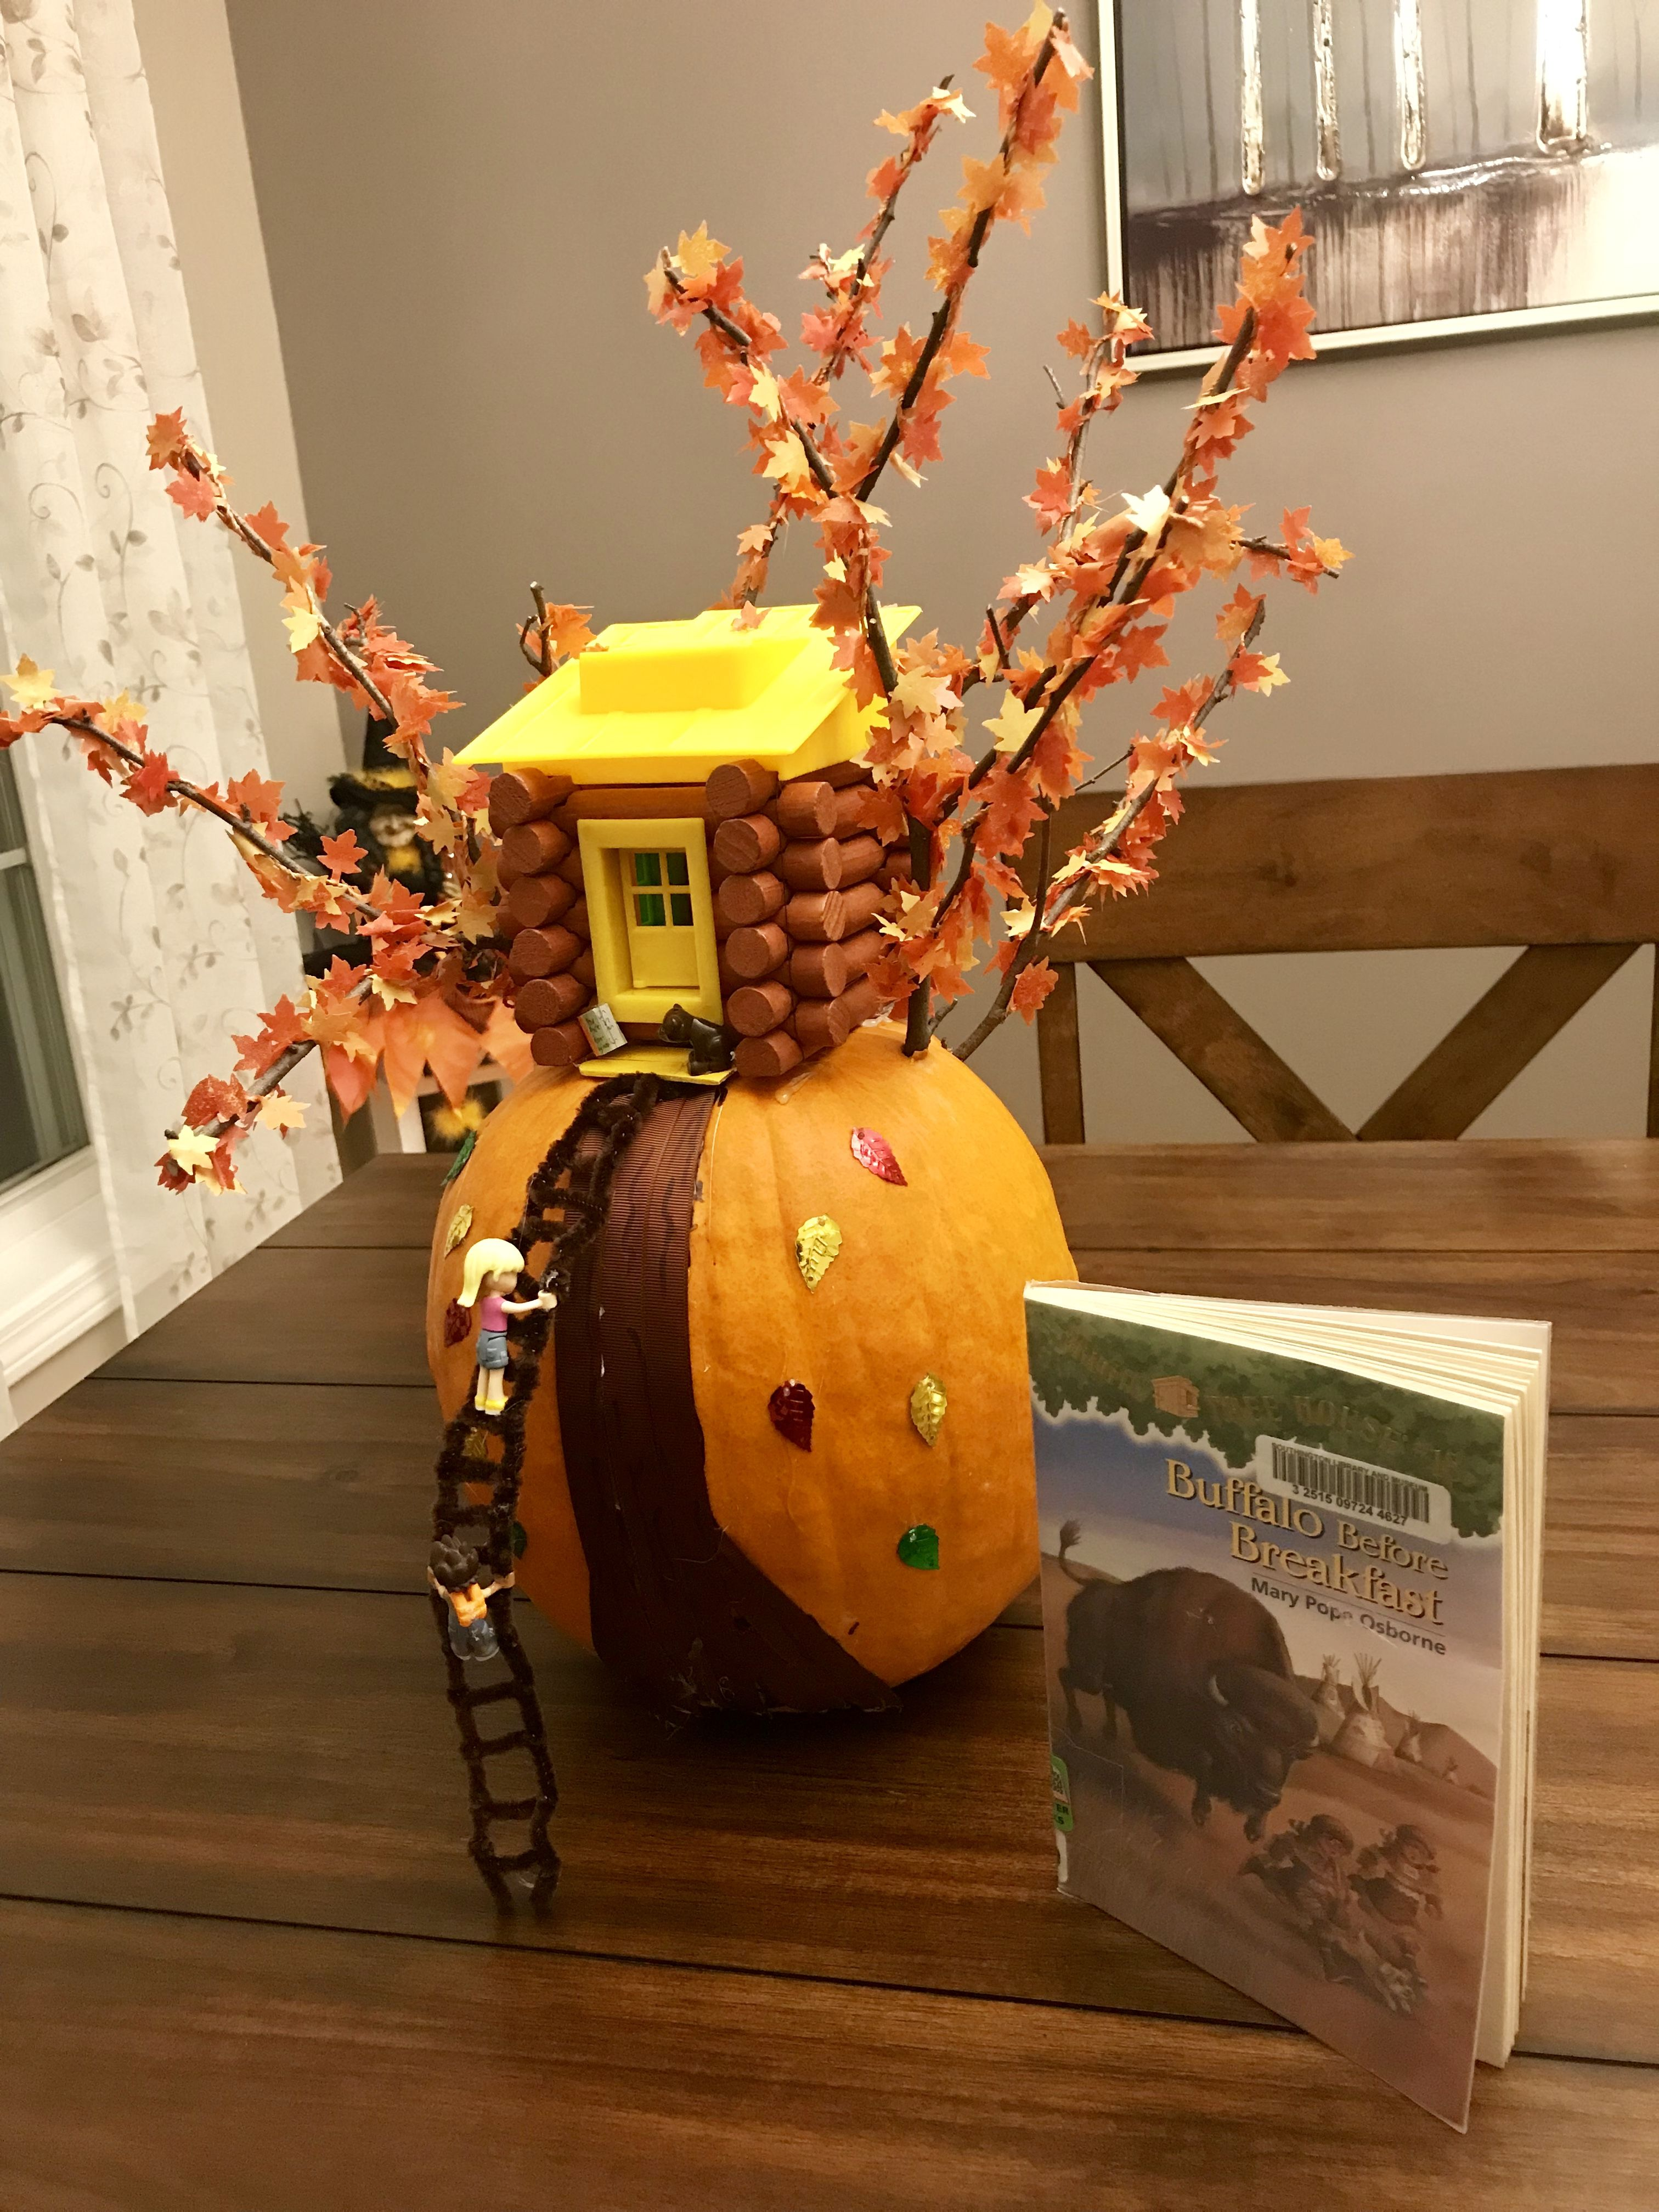 Magic Tree House Pumpkin Based On Book Series Teddy The